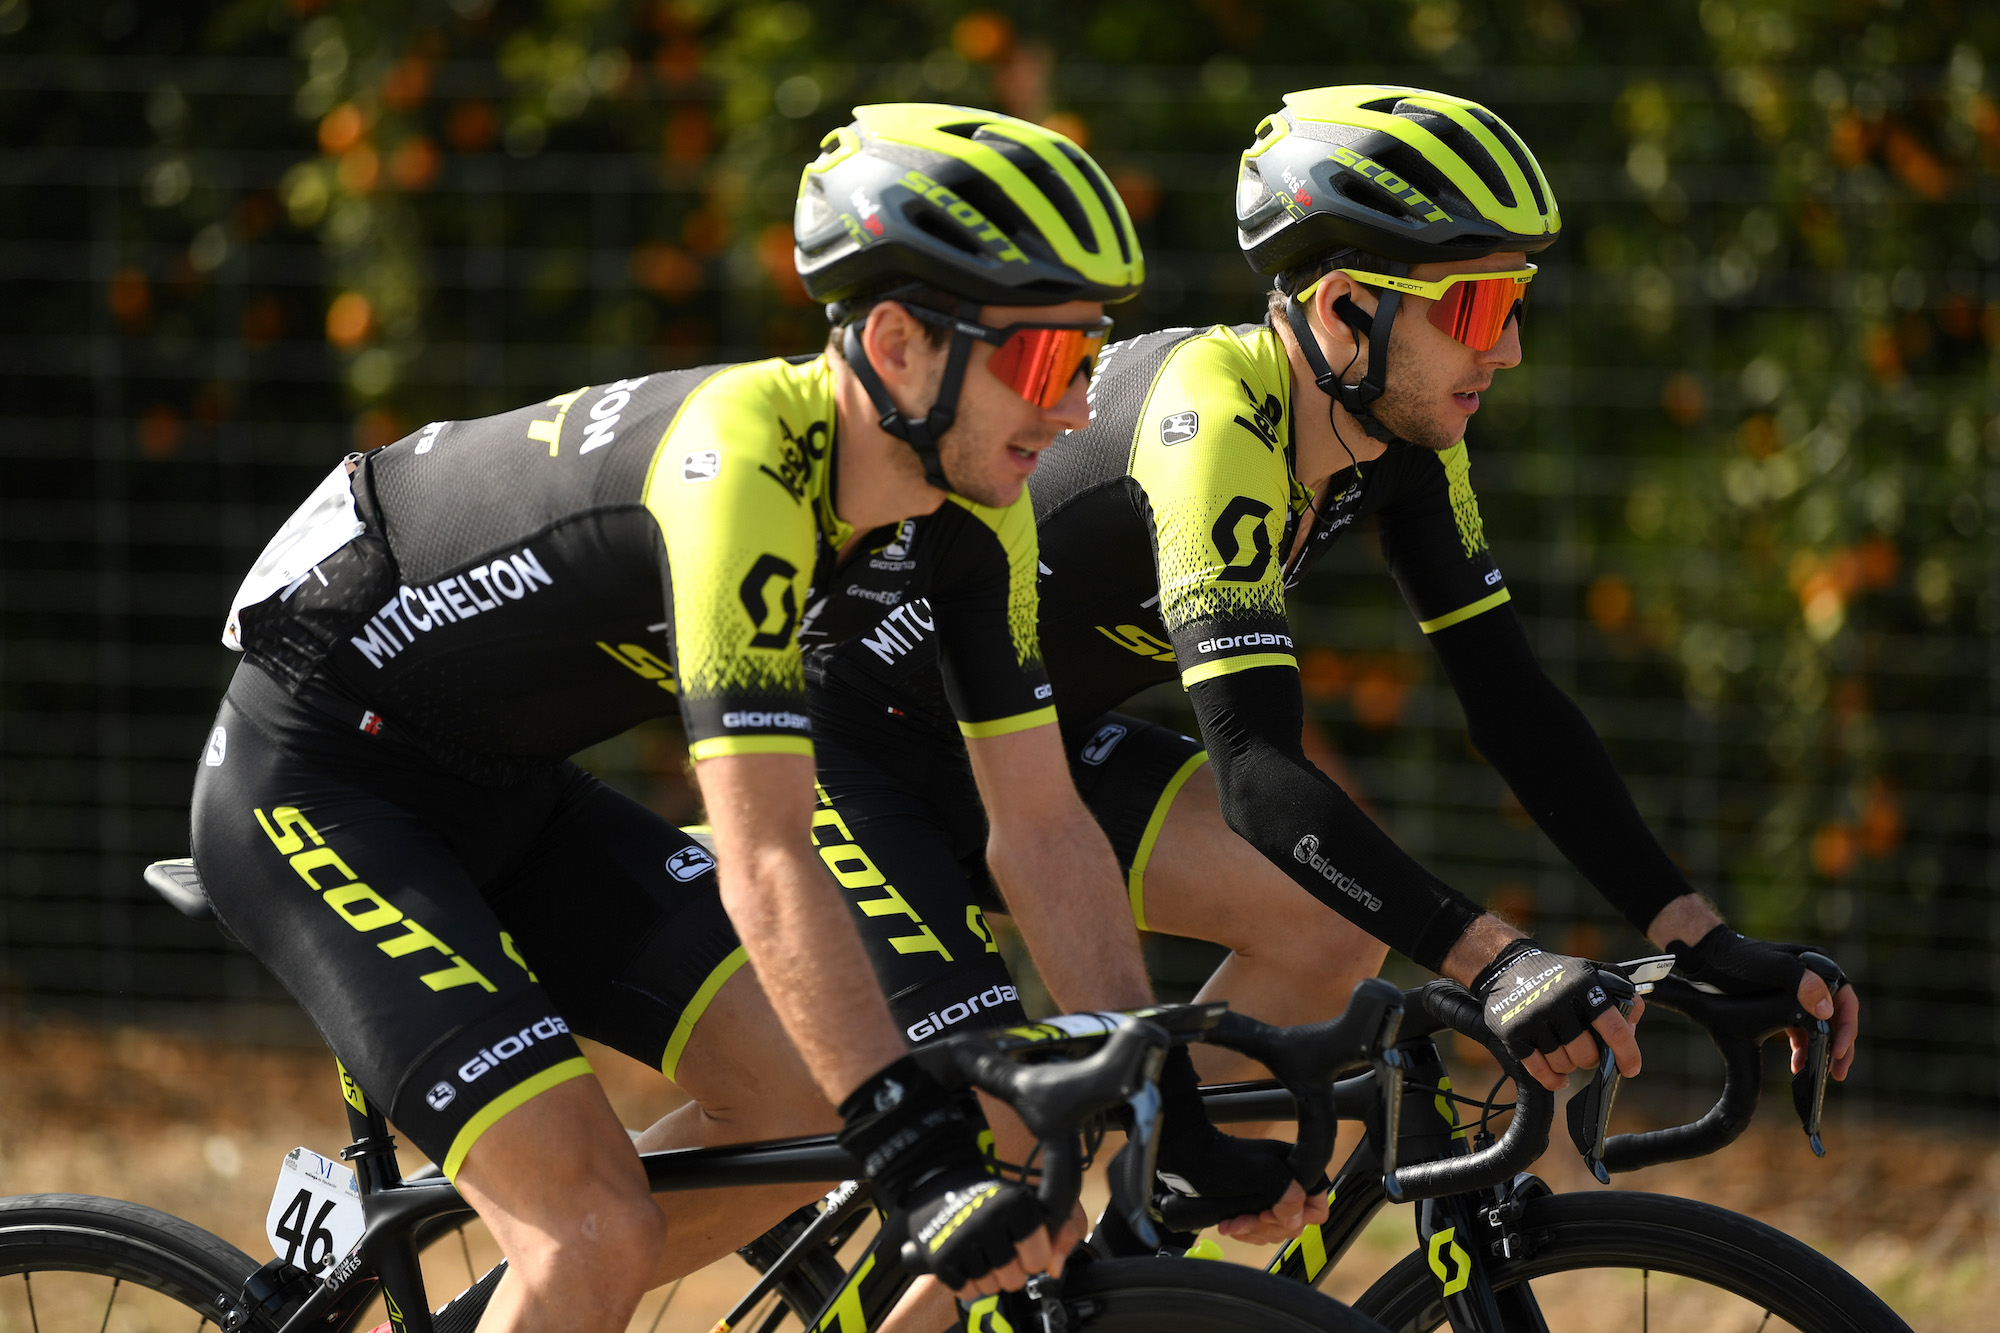 Yates brothers immediately back in action after Tour de France at Clásica San Sebastián